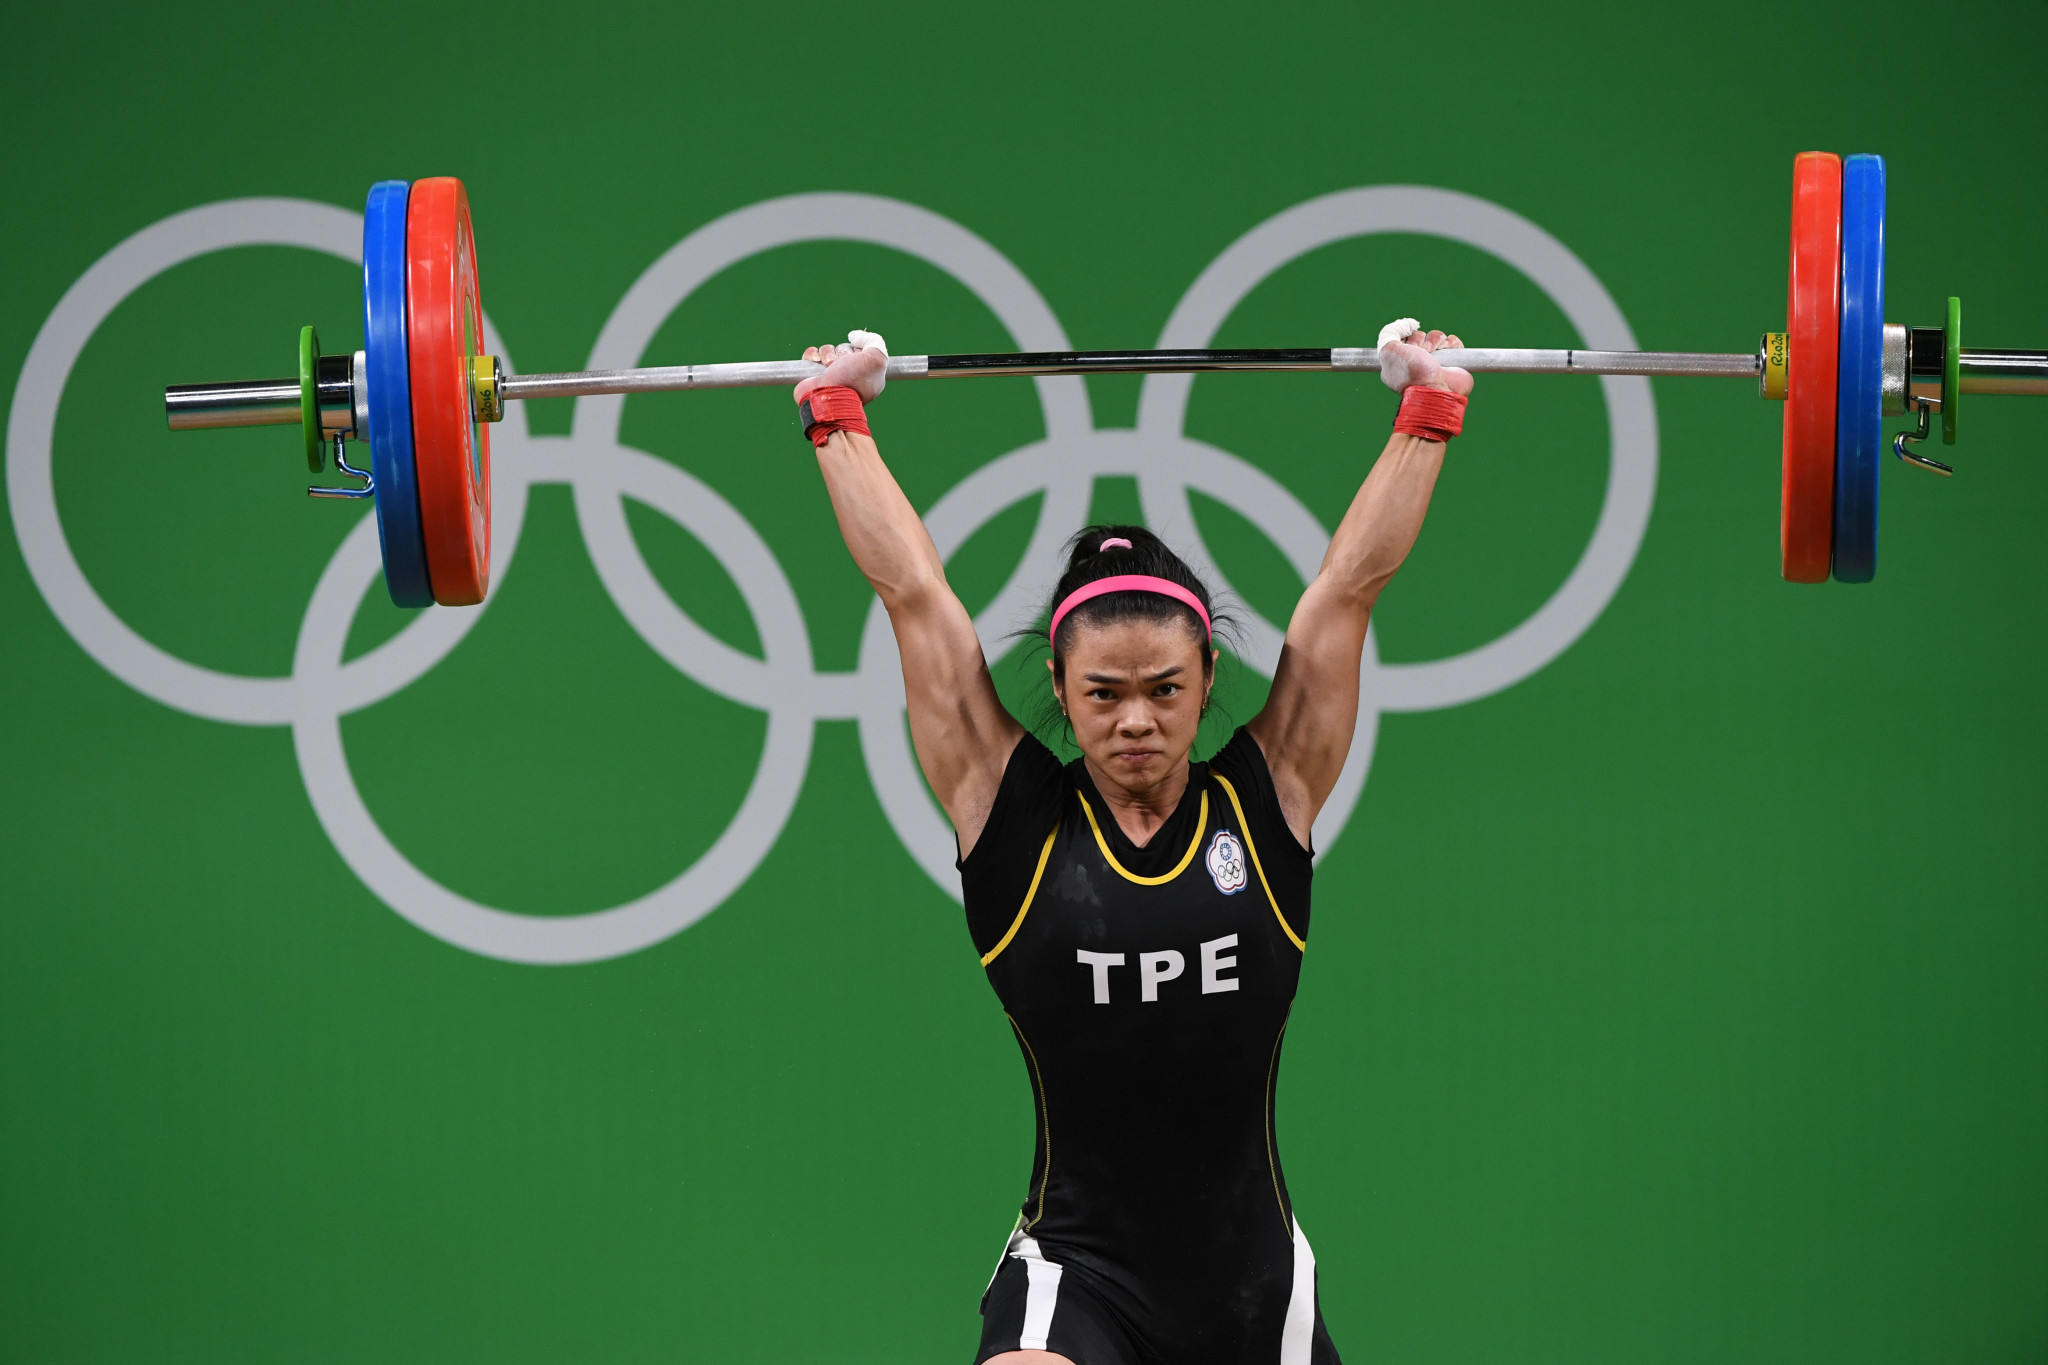 Weightlifter Hsu Shu-ching was Chinese Taipei's sole gold medallist at the Rio 2016 Olympic Games, winning the women's 53 kilograms event ©Getty Images